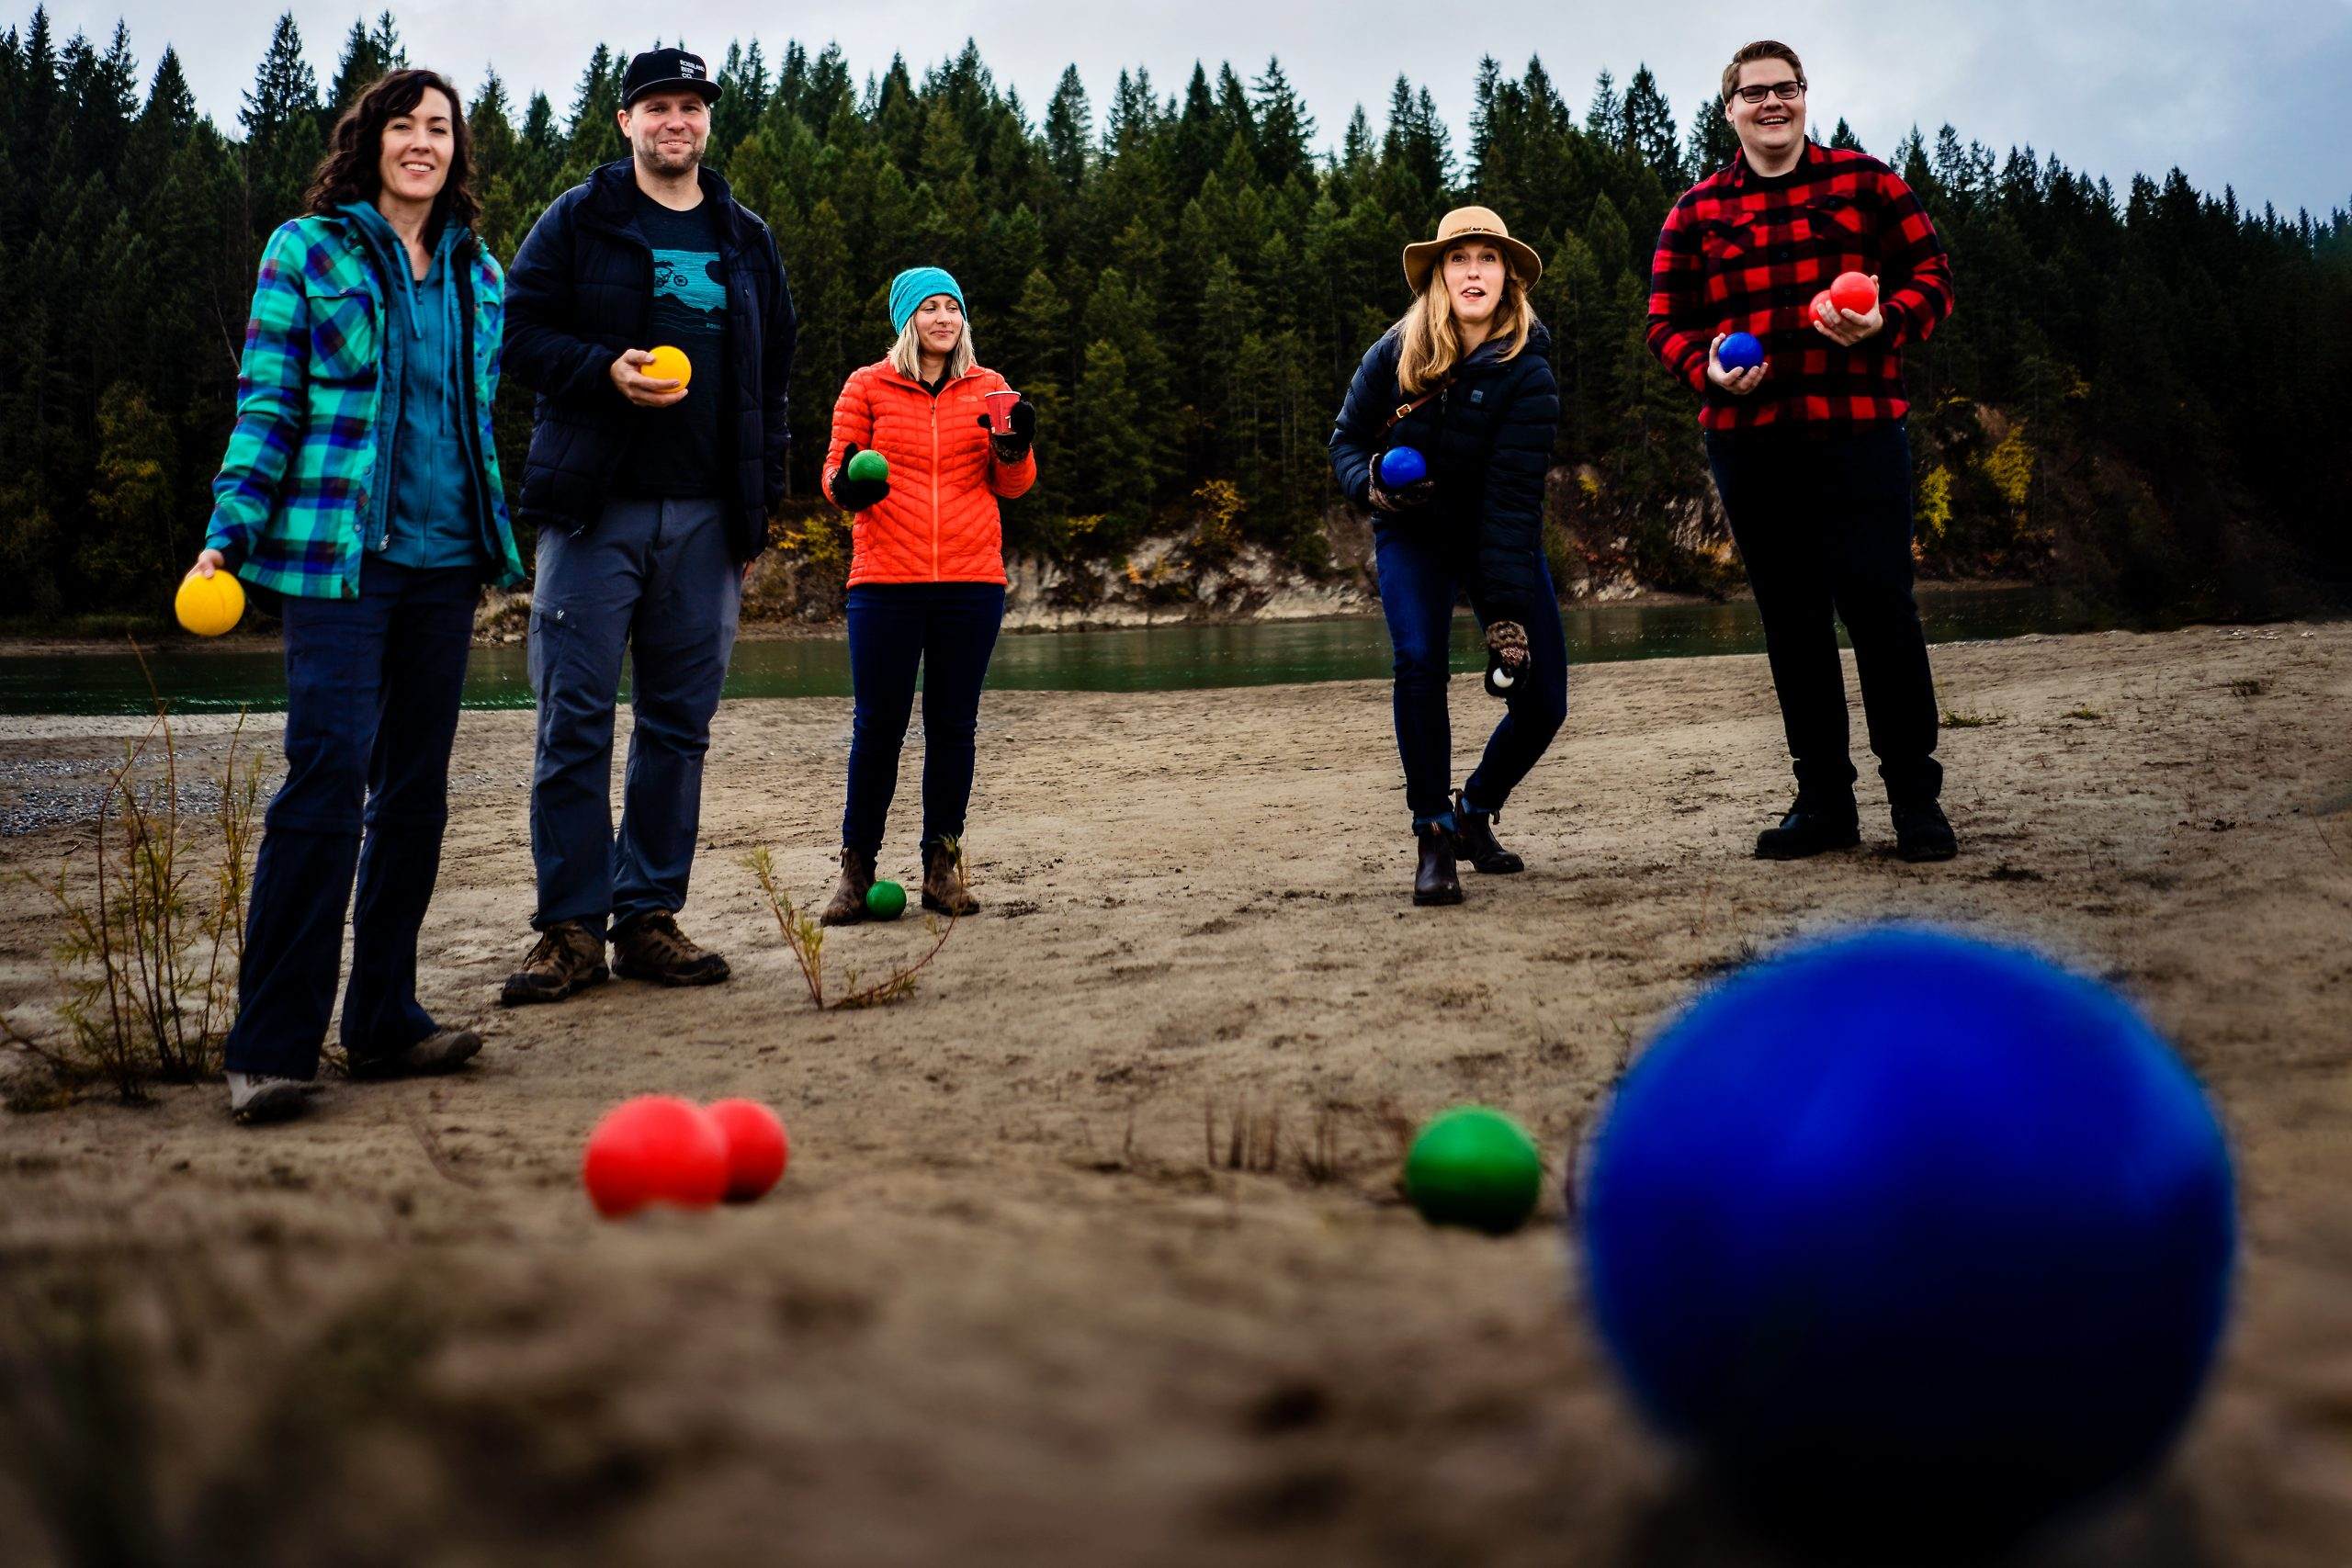 Family members play a game with colorful balls